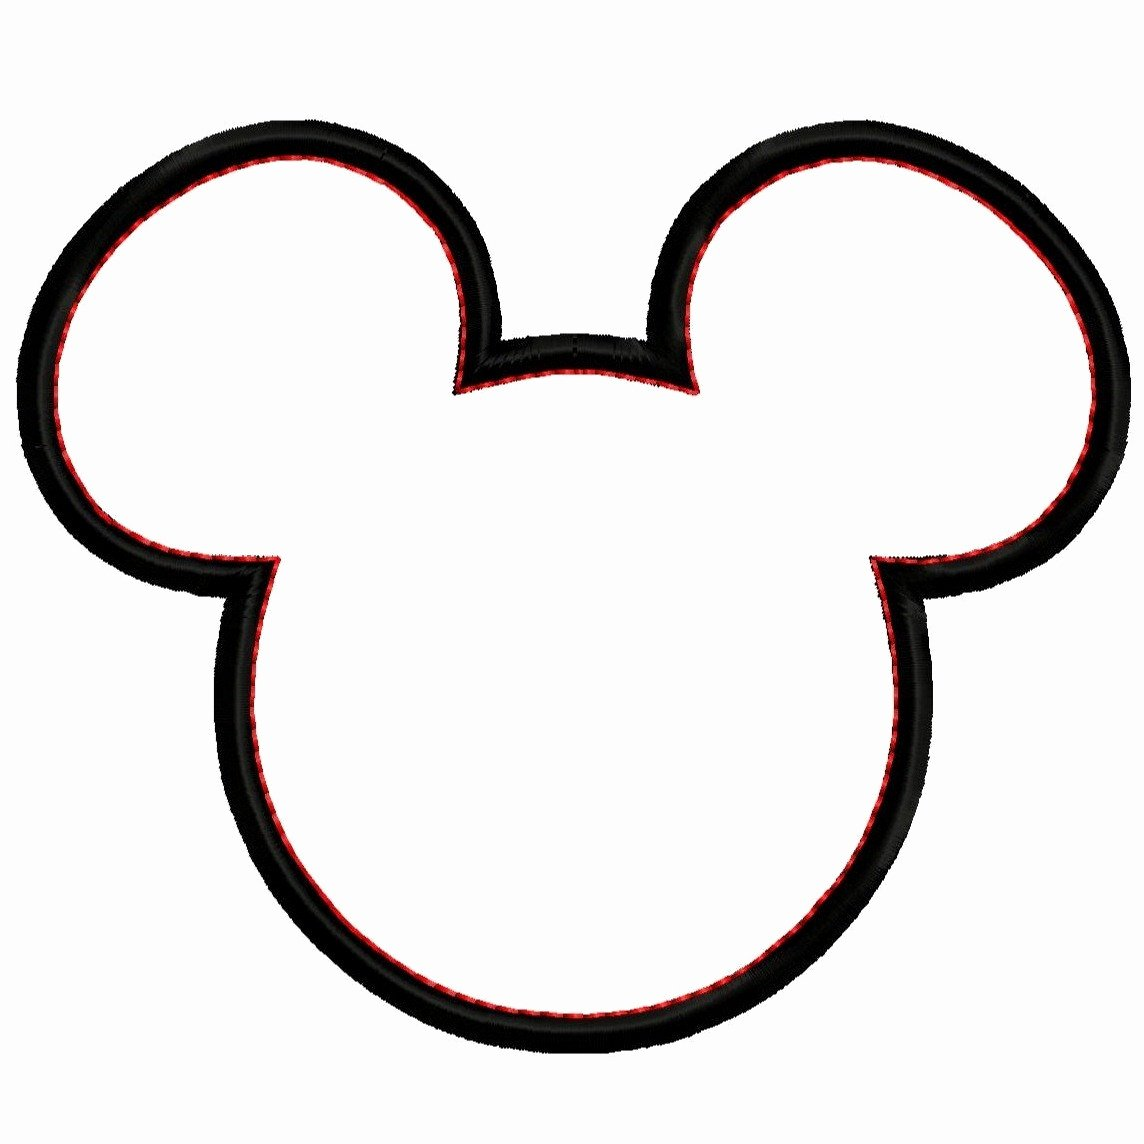 Minnie Mouse Head Silhouette Printable Luxury Free Mickey and Minnie Mouse Silhouette Download Free